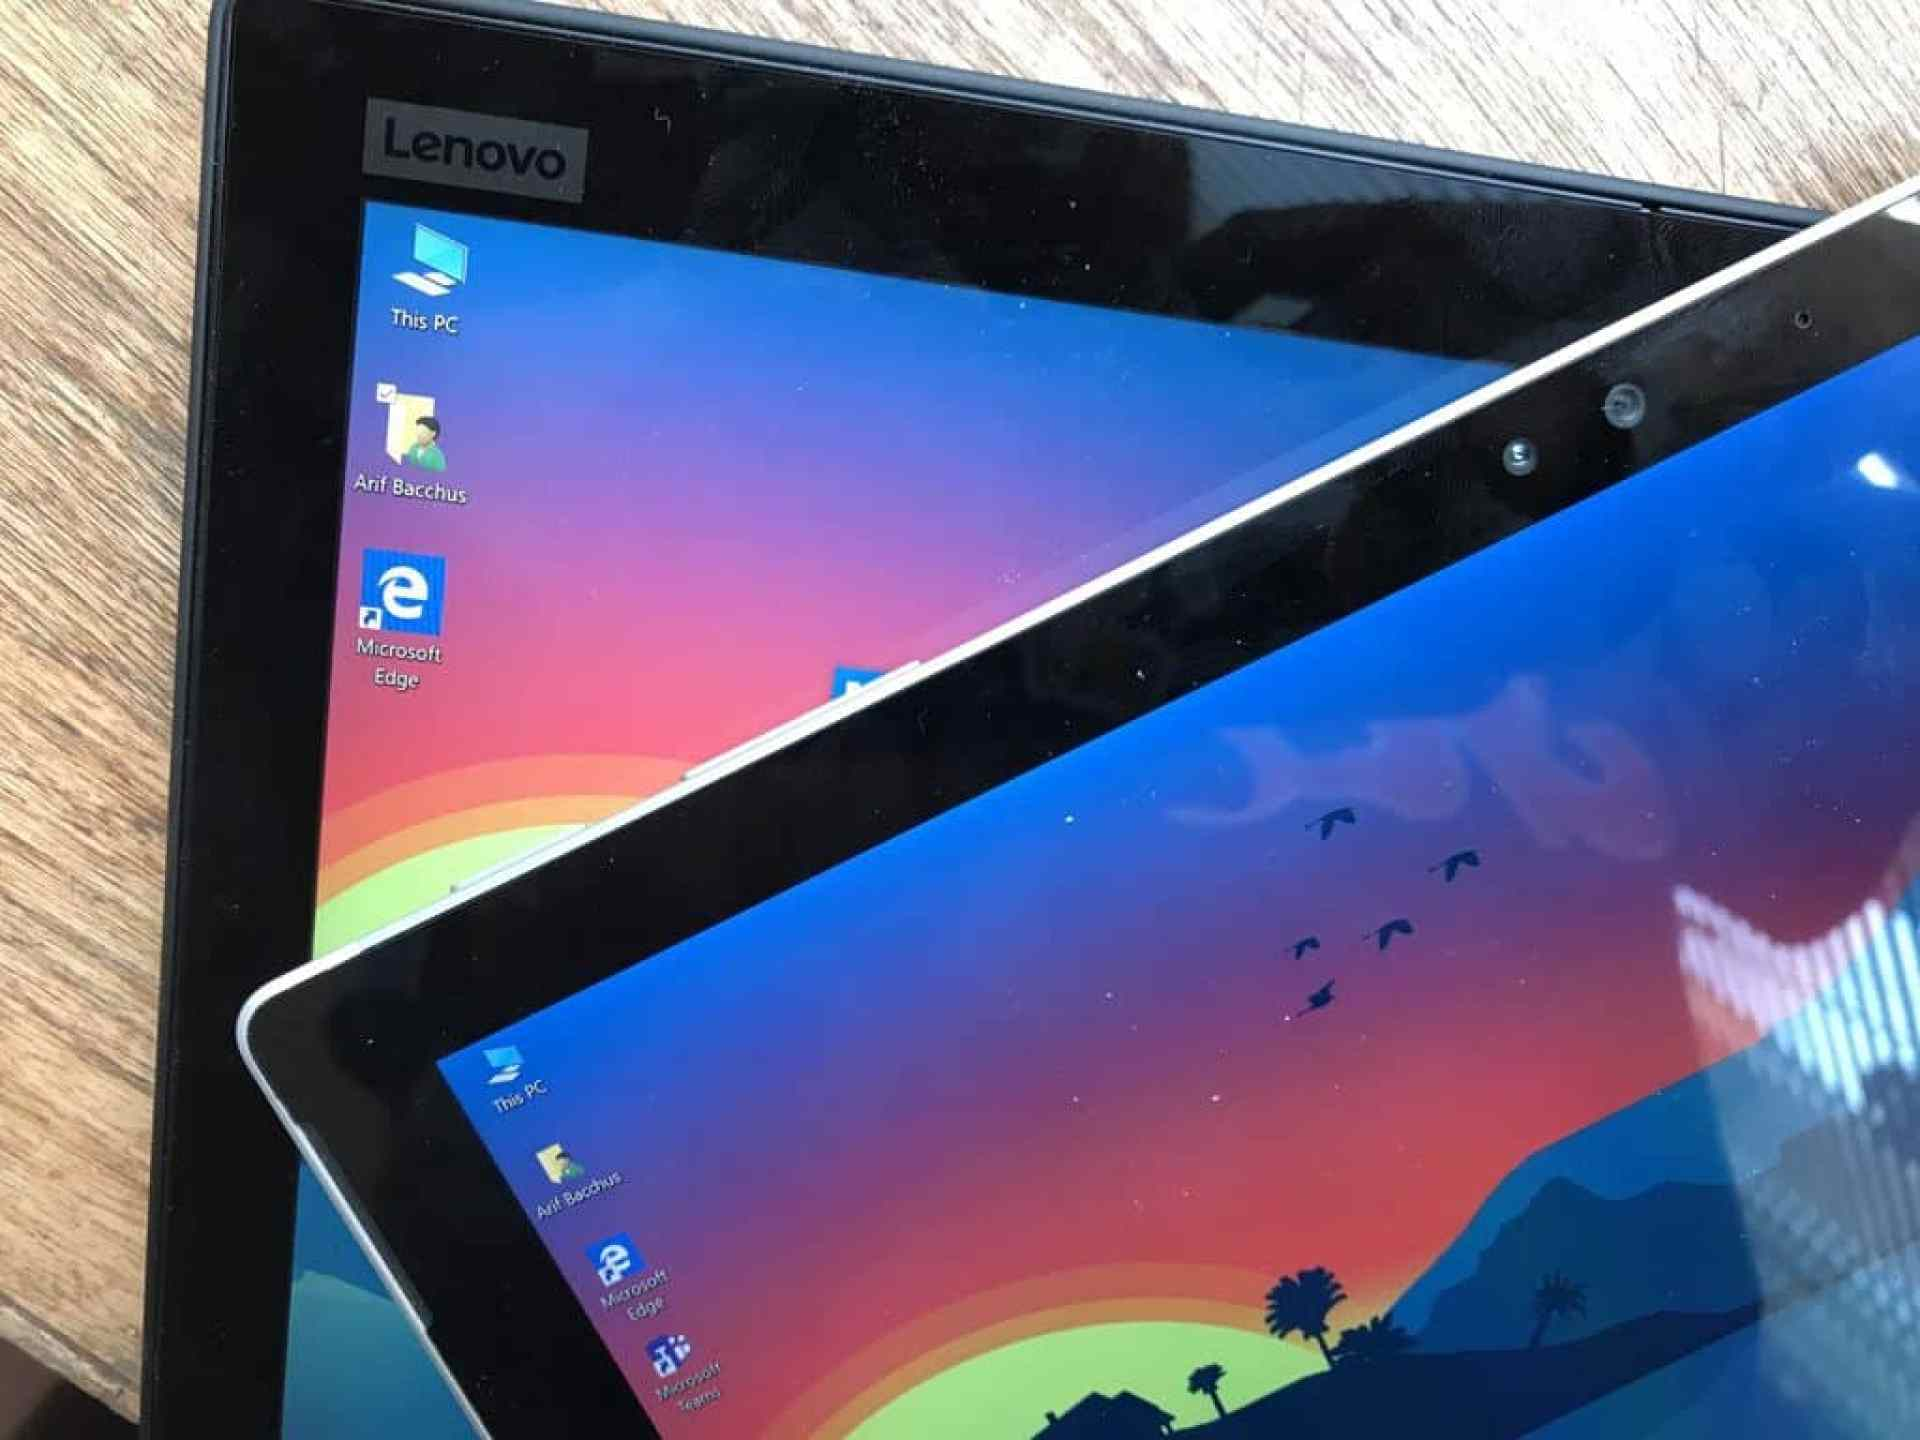 Lenovo ThinkPad X1 Tablet 3rd Gen: Don't buy a Surface Pro, buy this